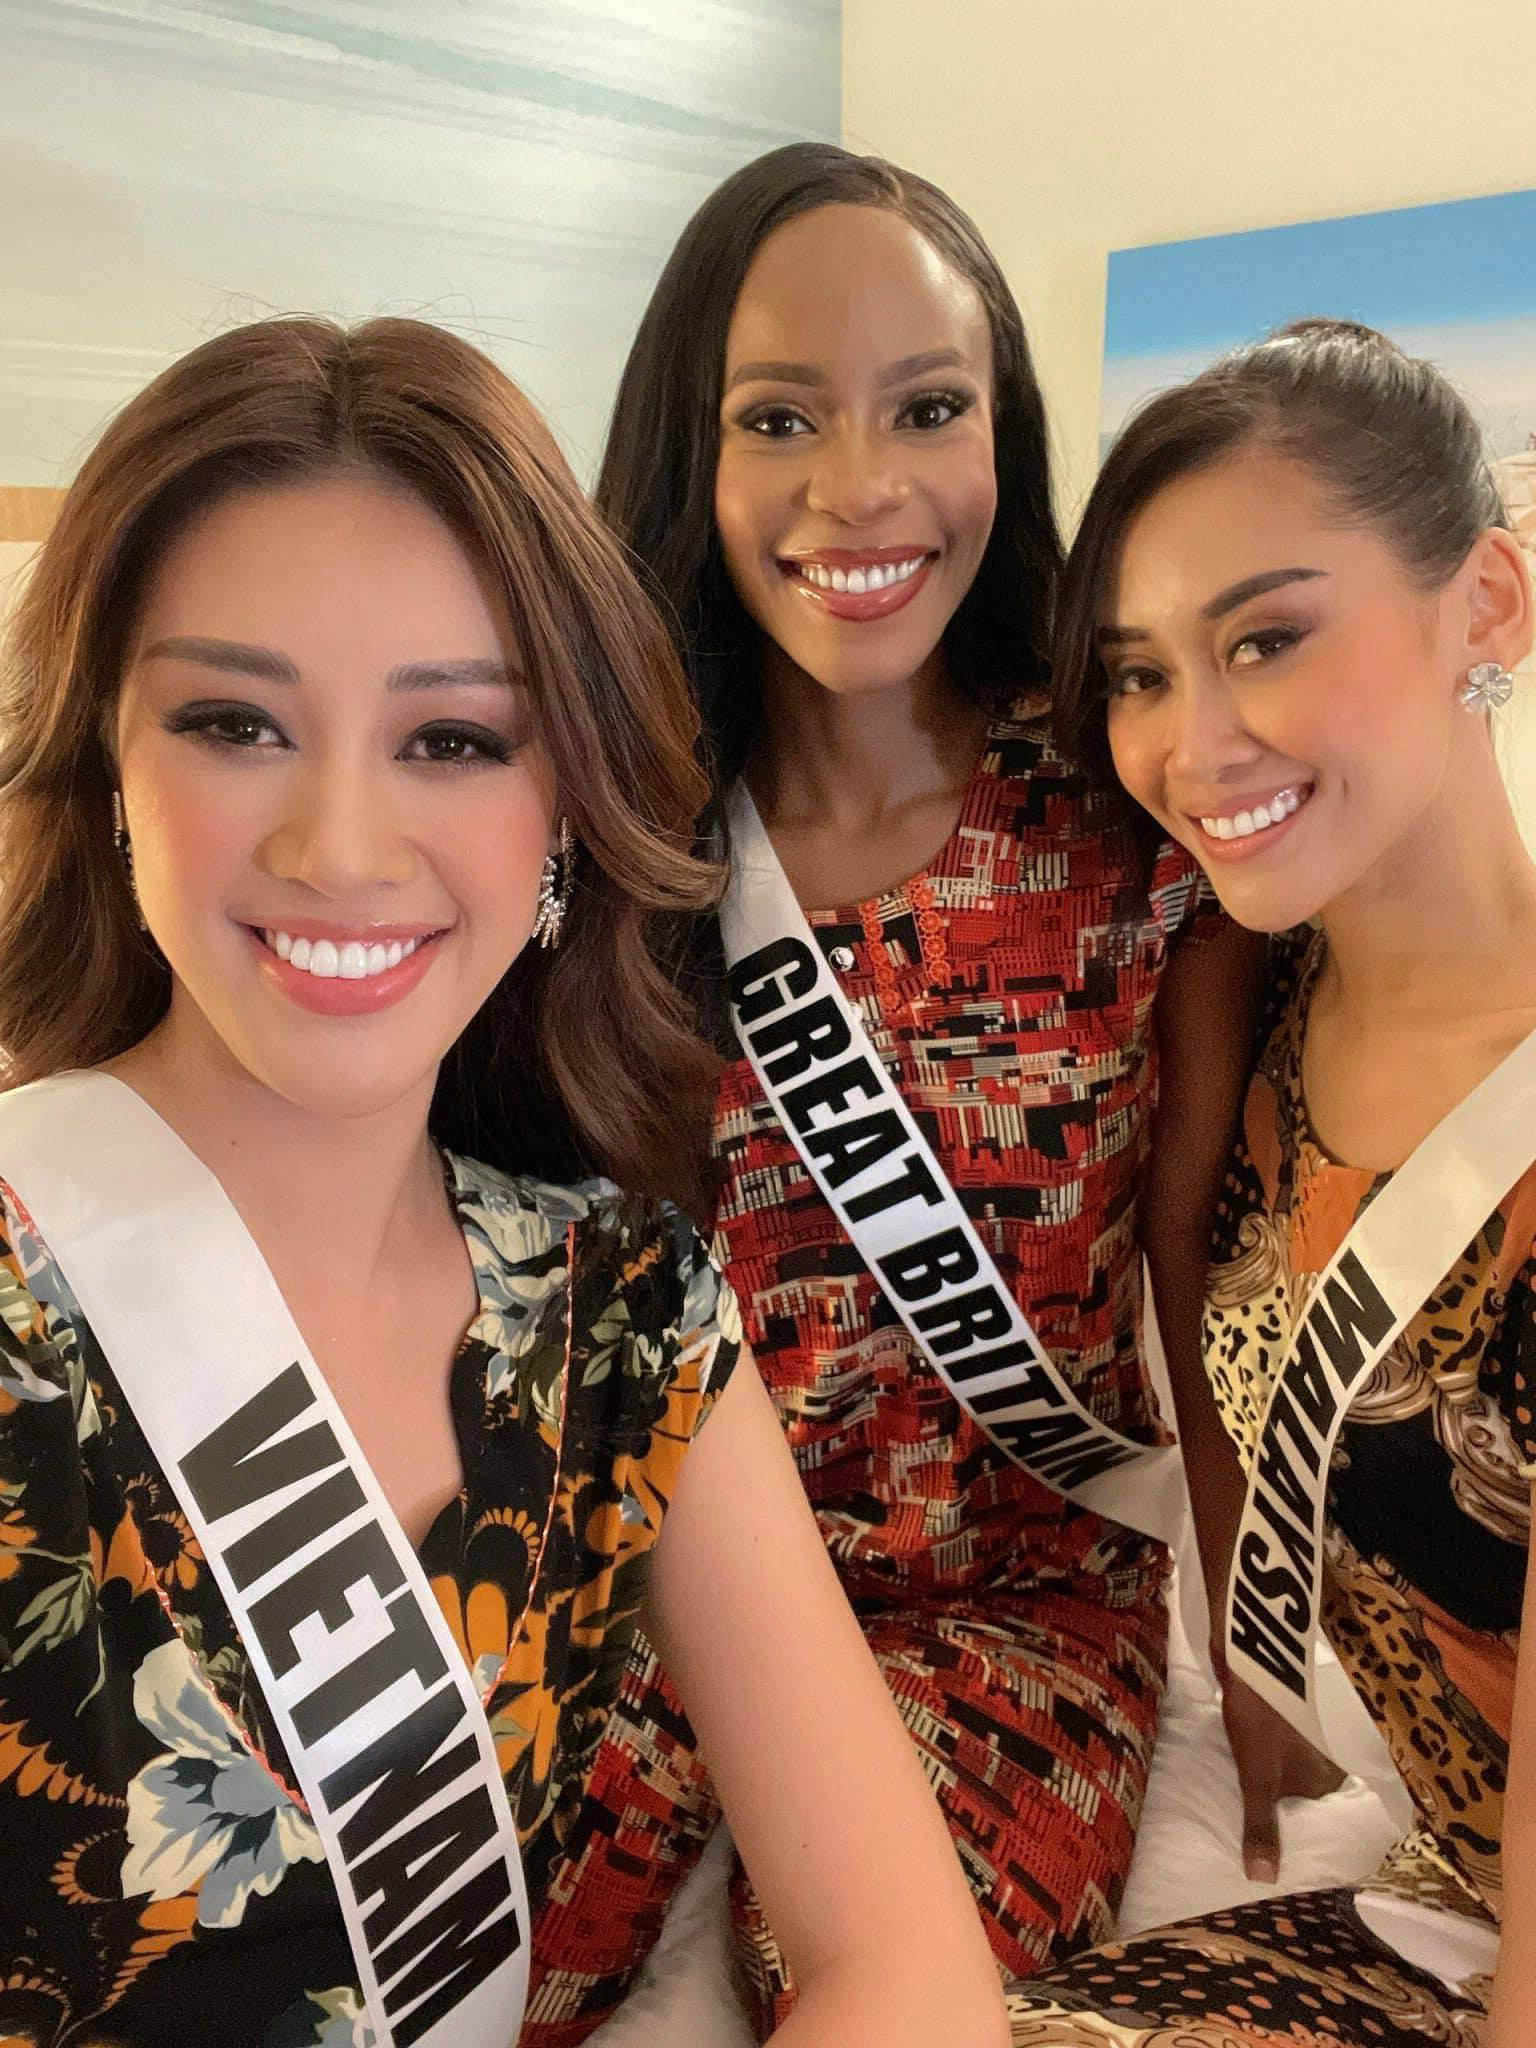 A photo captures Miss Universe Vietnam, Miss Universe Malaysia and Miss Universes Great Britain in Vietnamese women' pajamas while teh trio enjoy a moment together at Miss Universe 2020. Photo: Instagram @khanhvannguyen25